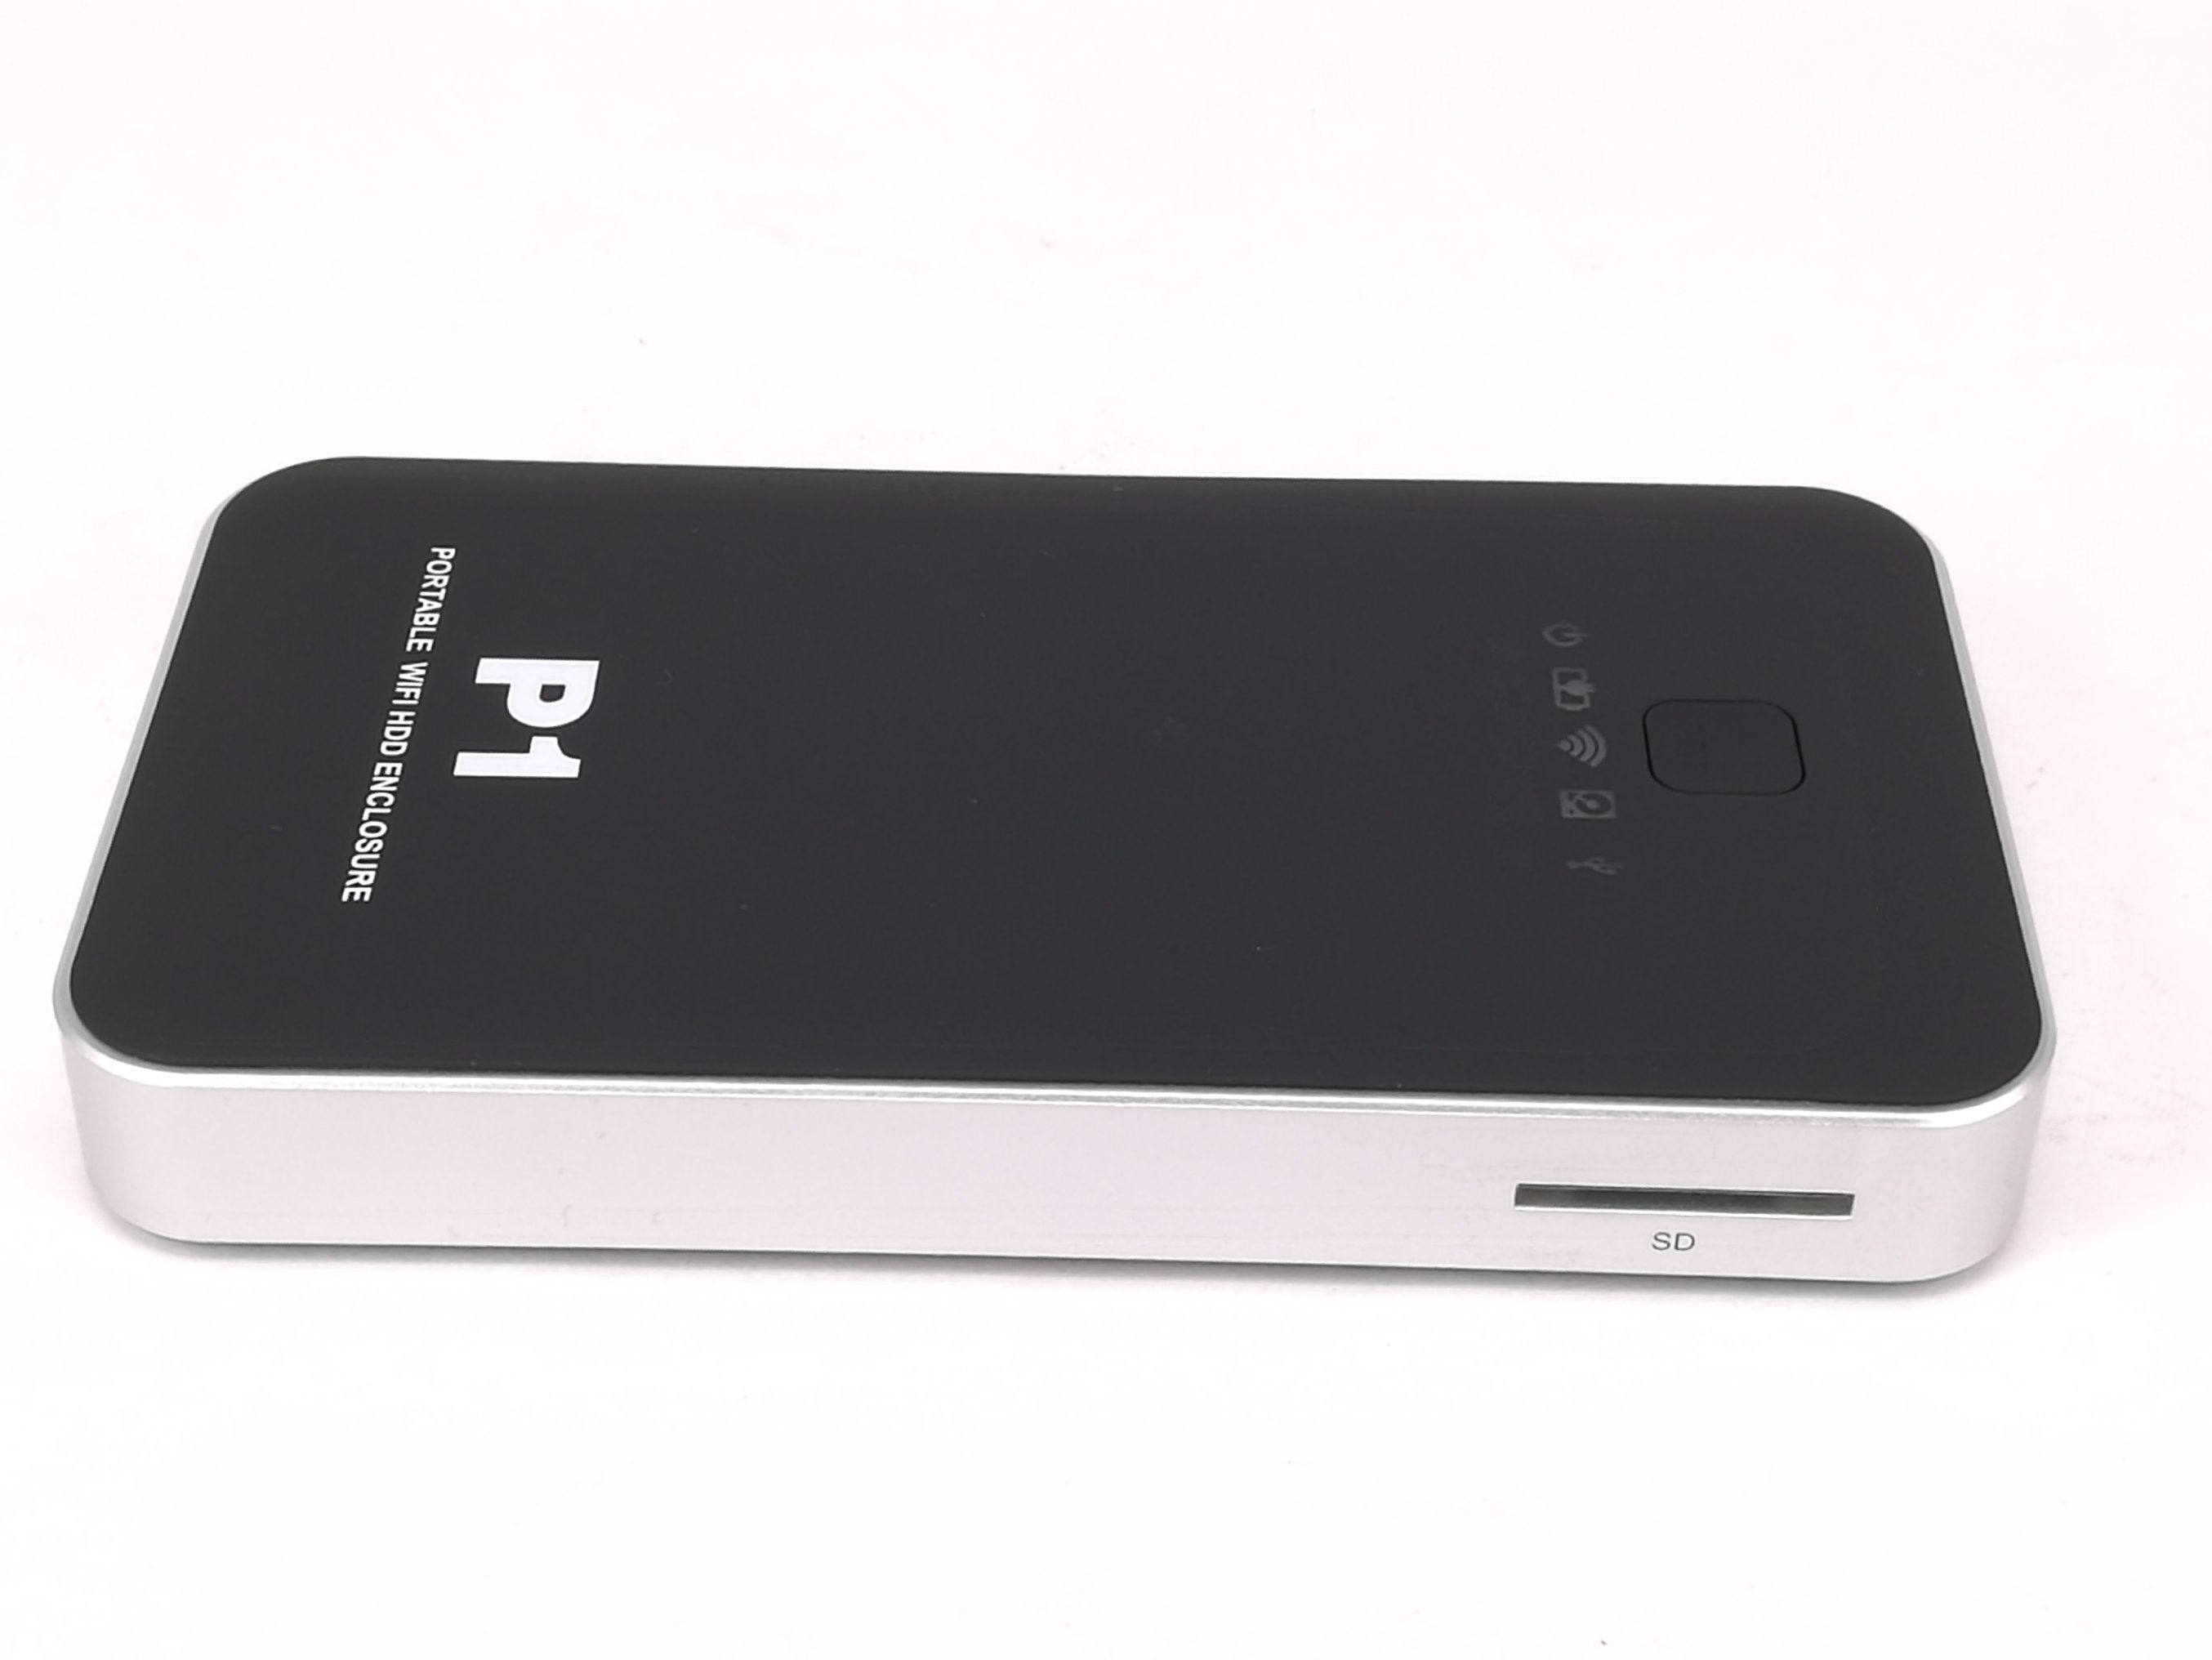 WiFi Hard Drive Enclosures, Support Ios Android Windows, Portable Streaming  Server, External Hard Drive, SD Card Reader,